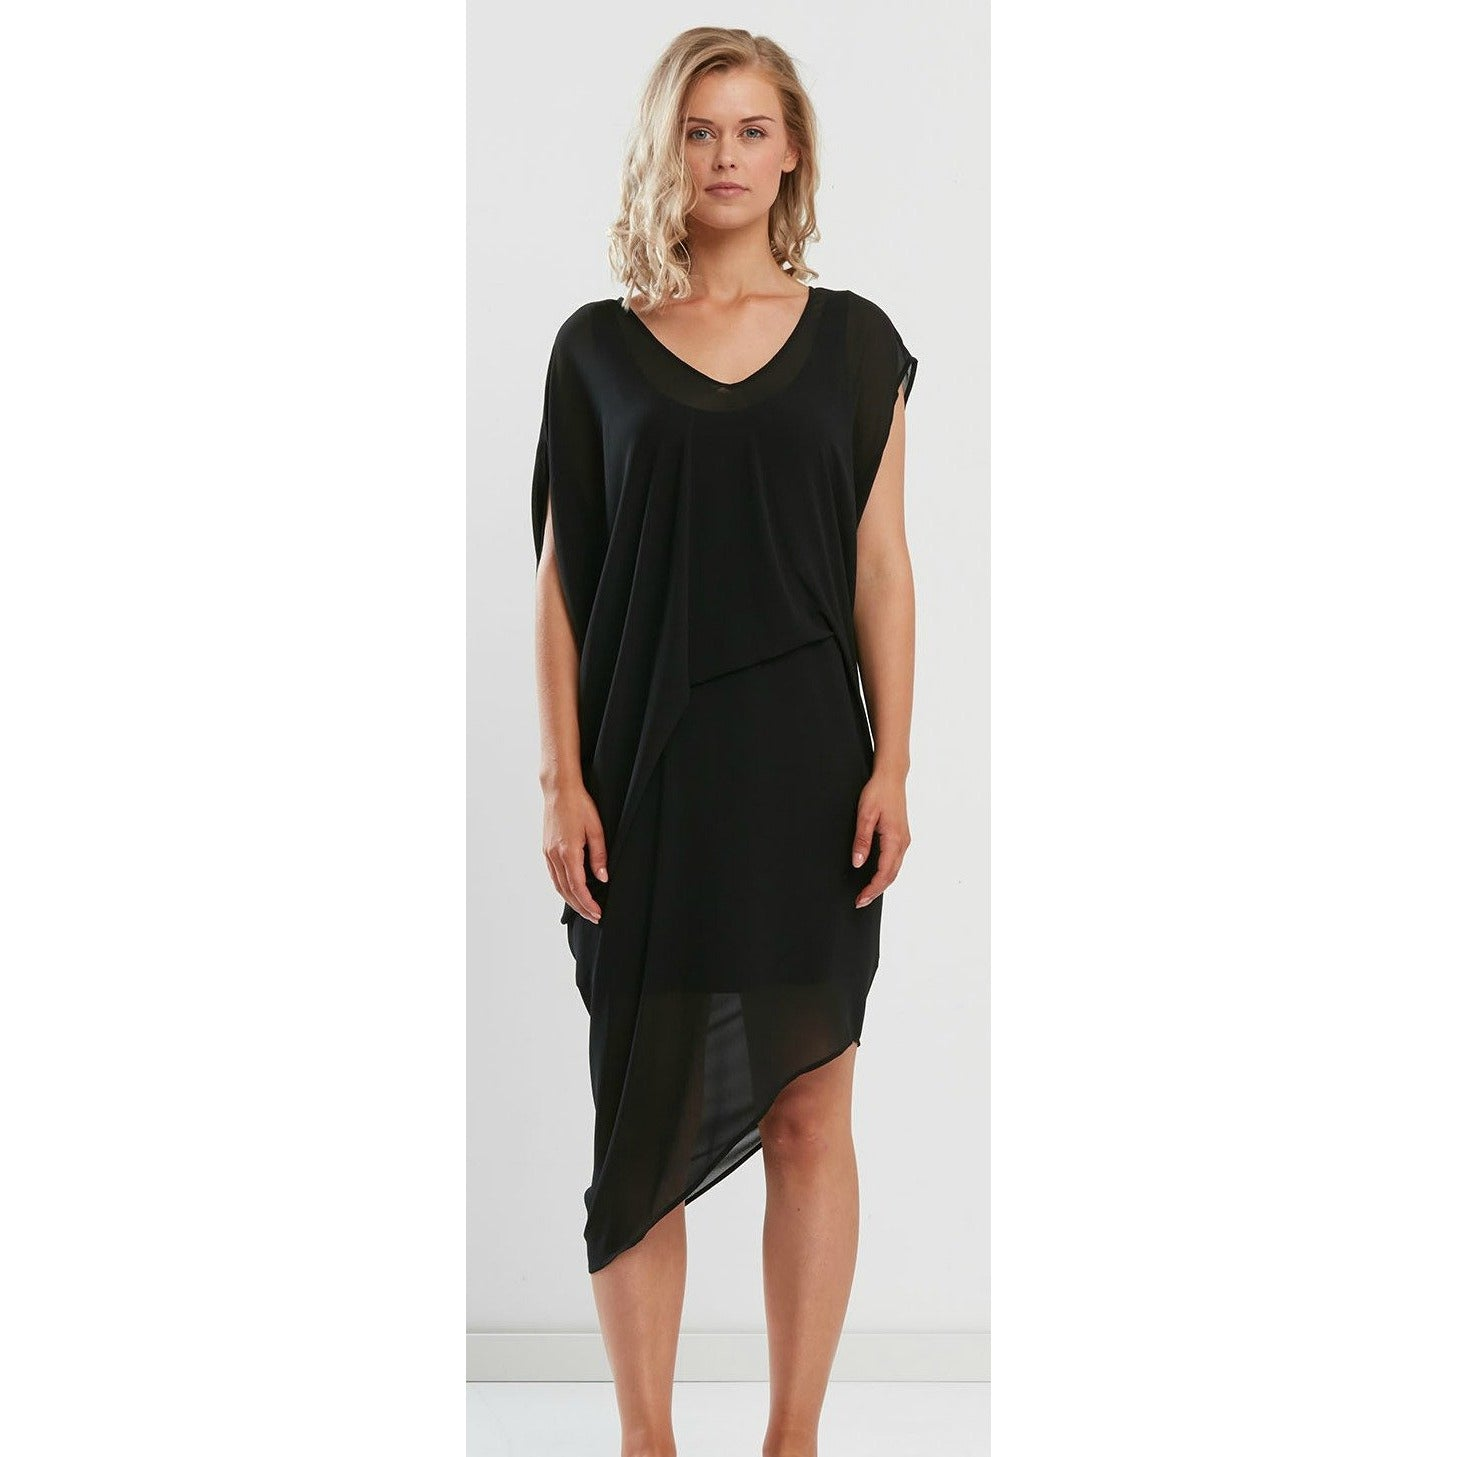 Faye Brown Drape Dress